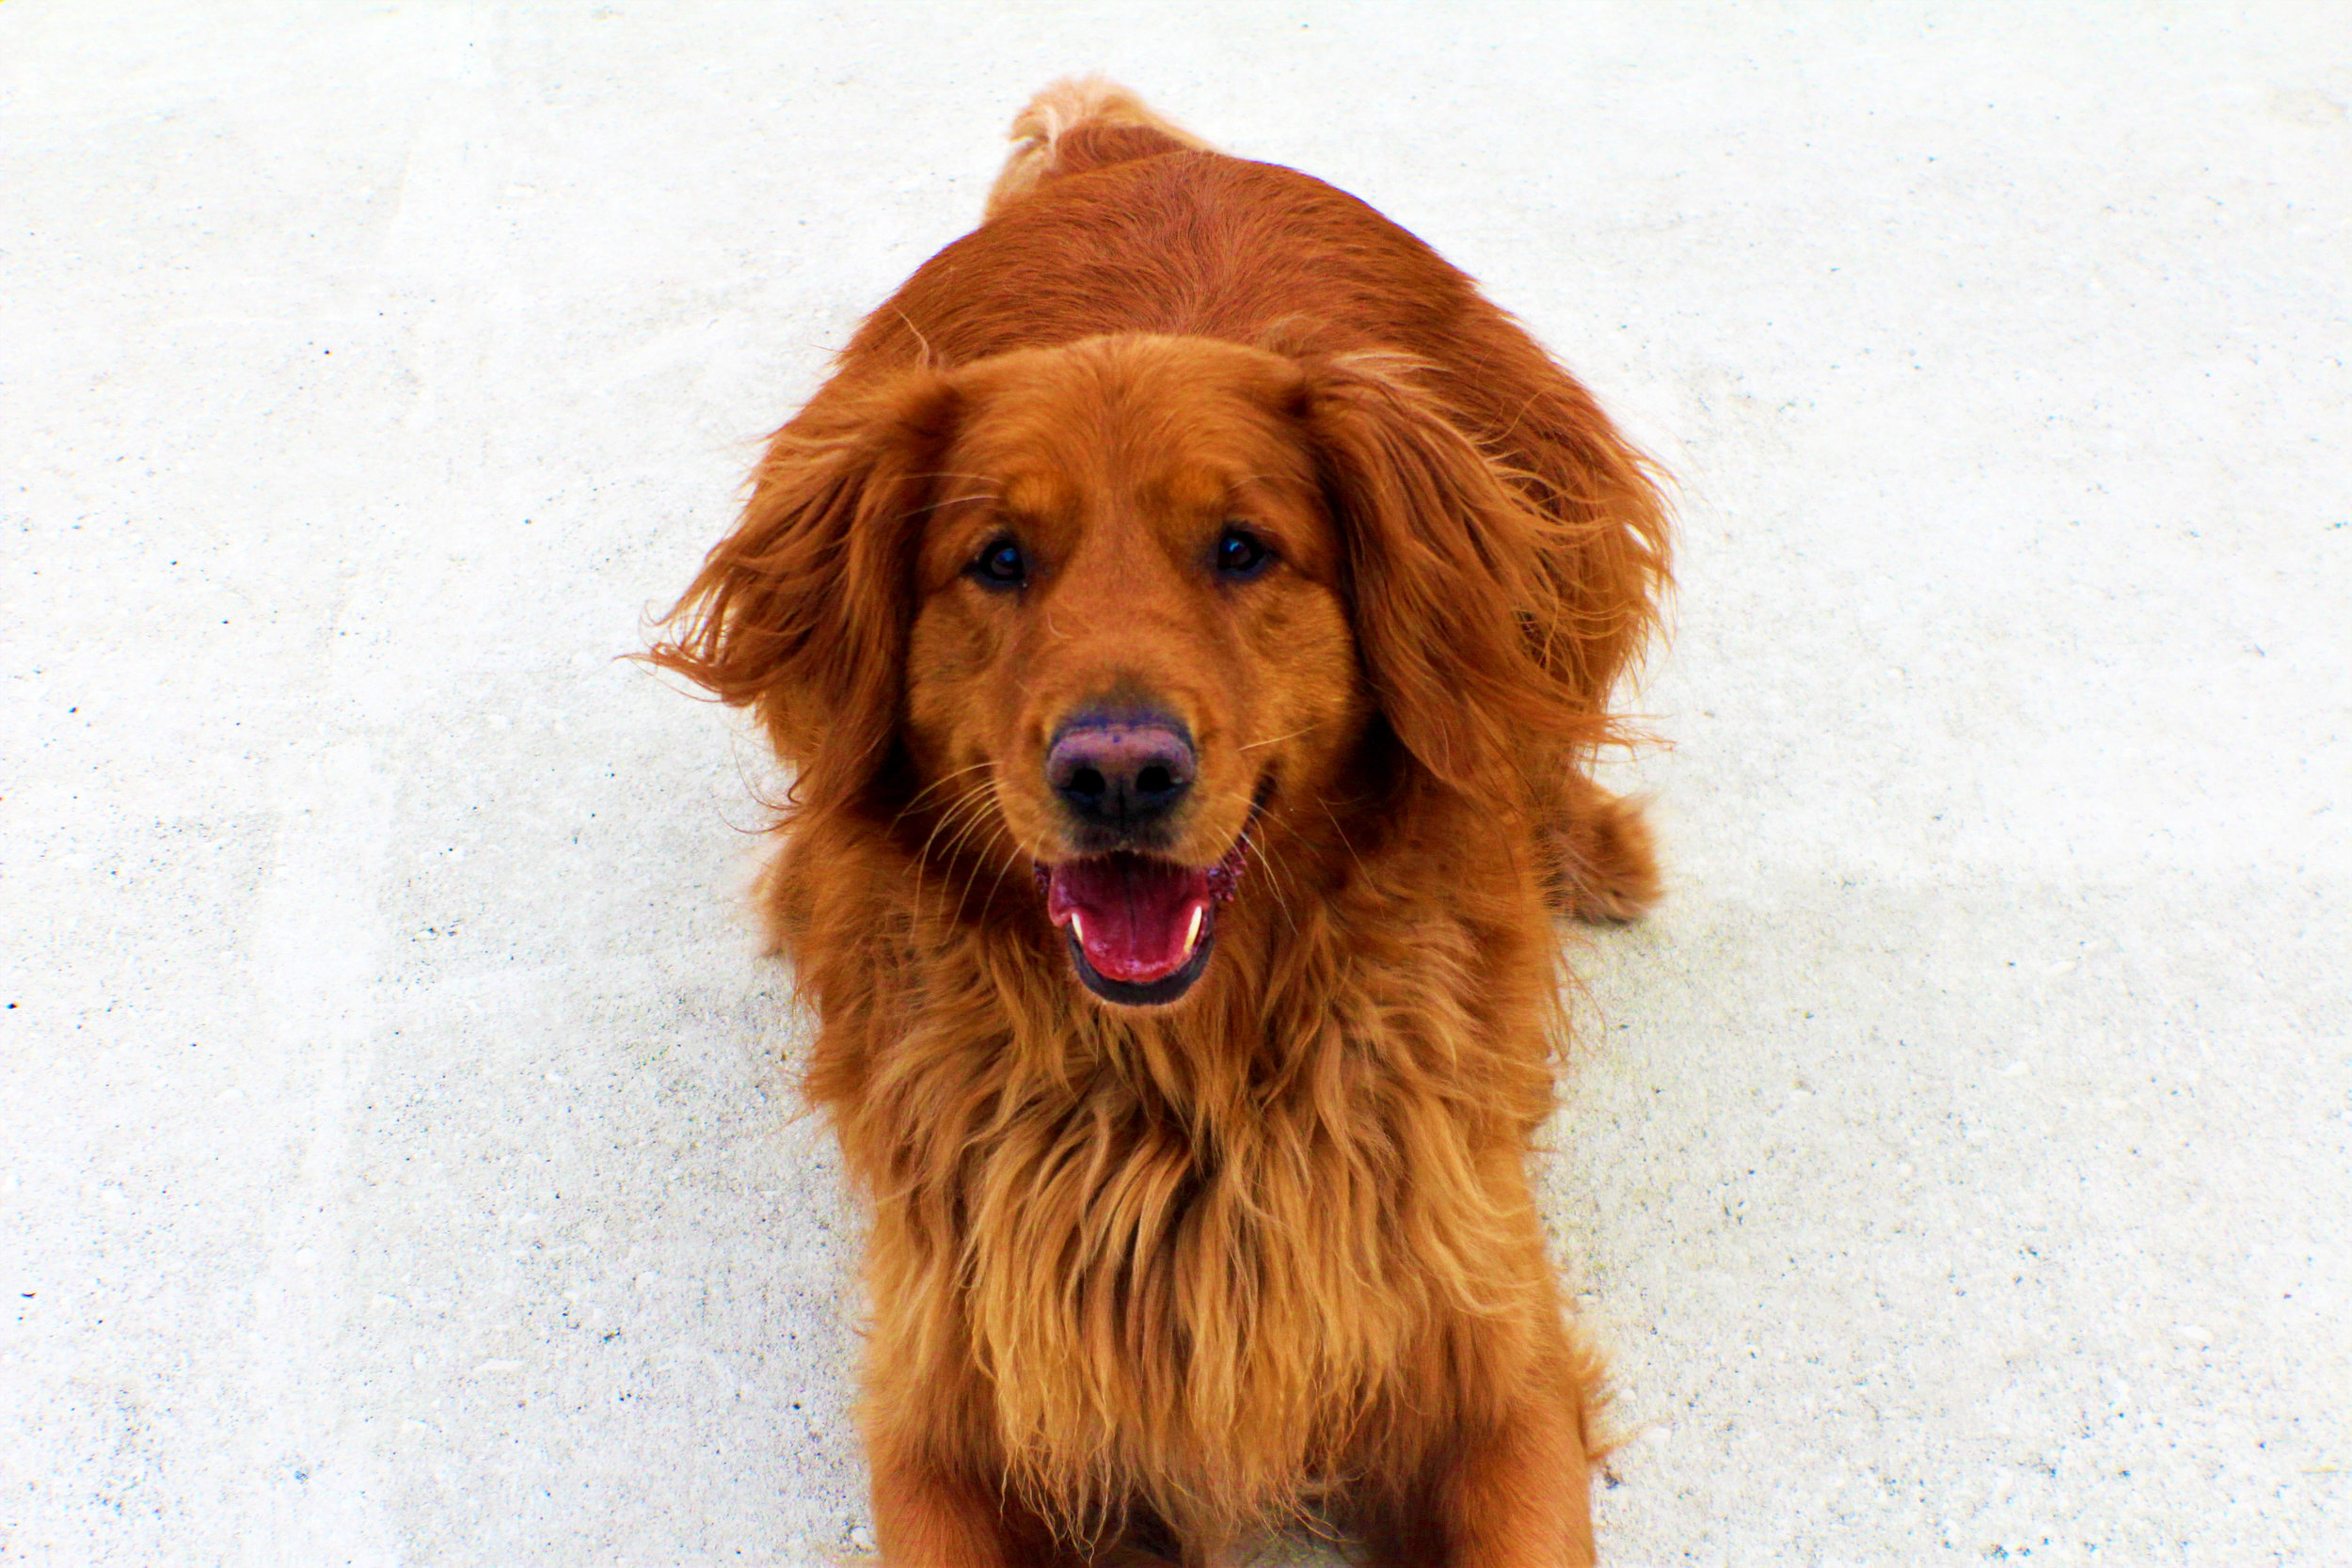 Oh Tucker Lee, he may look like your run of the mill Golden Retrievers but I can assure you he is not. From the moment he steps in the door it's petal to the metal. Playing with Tucker is like a kite trying to make the wind tired. He can best be described as the energizer bunny!